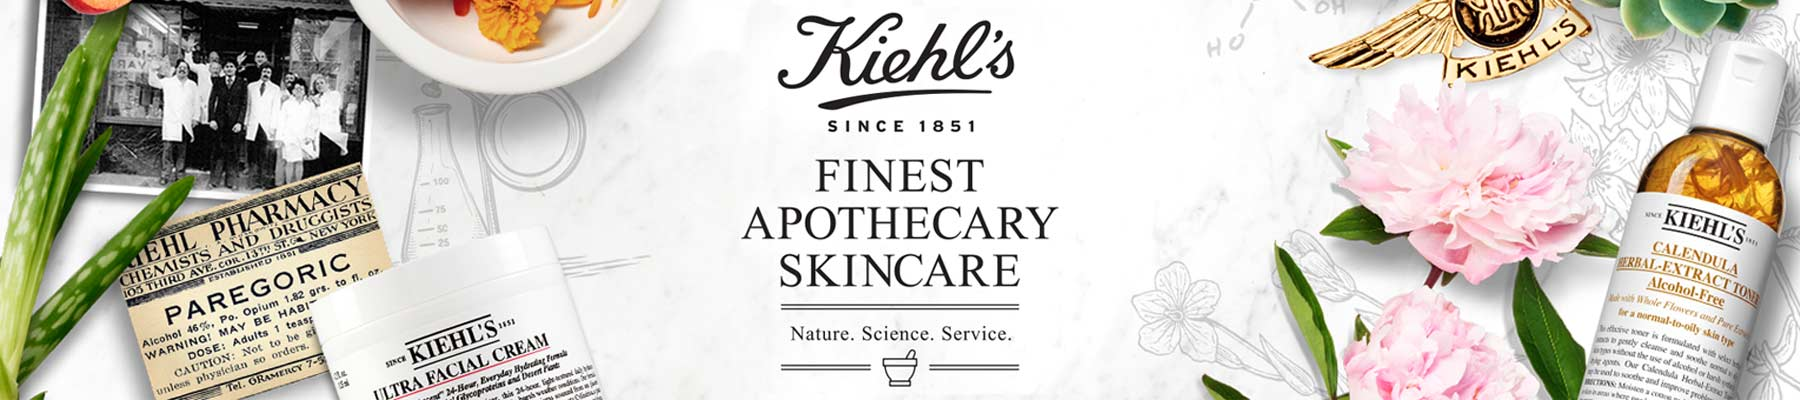 Kiehl's Since 1851: Finest apothecary skincare, nature. science. service.